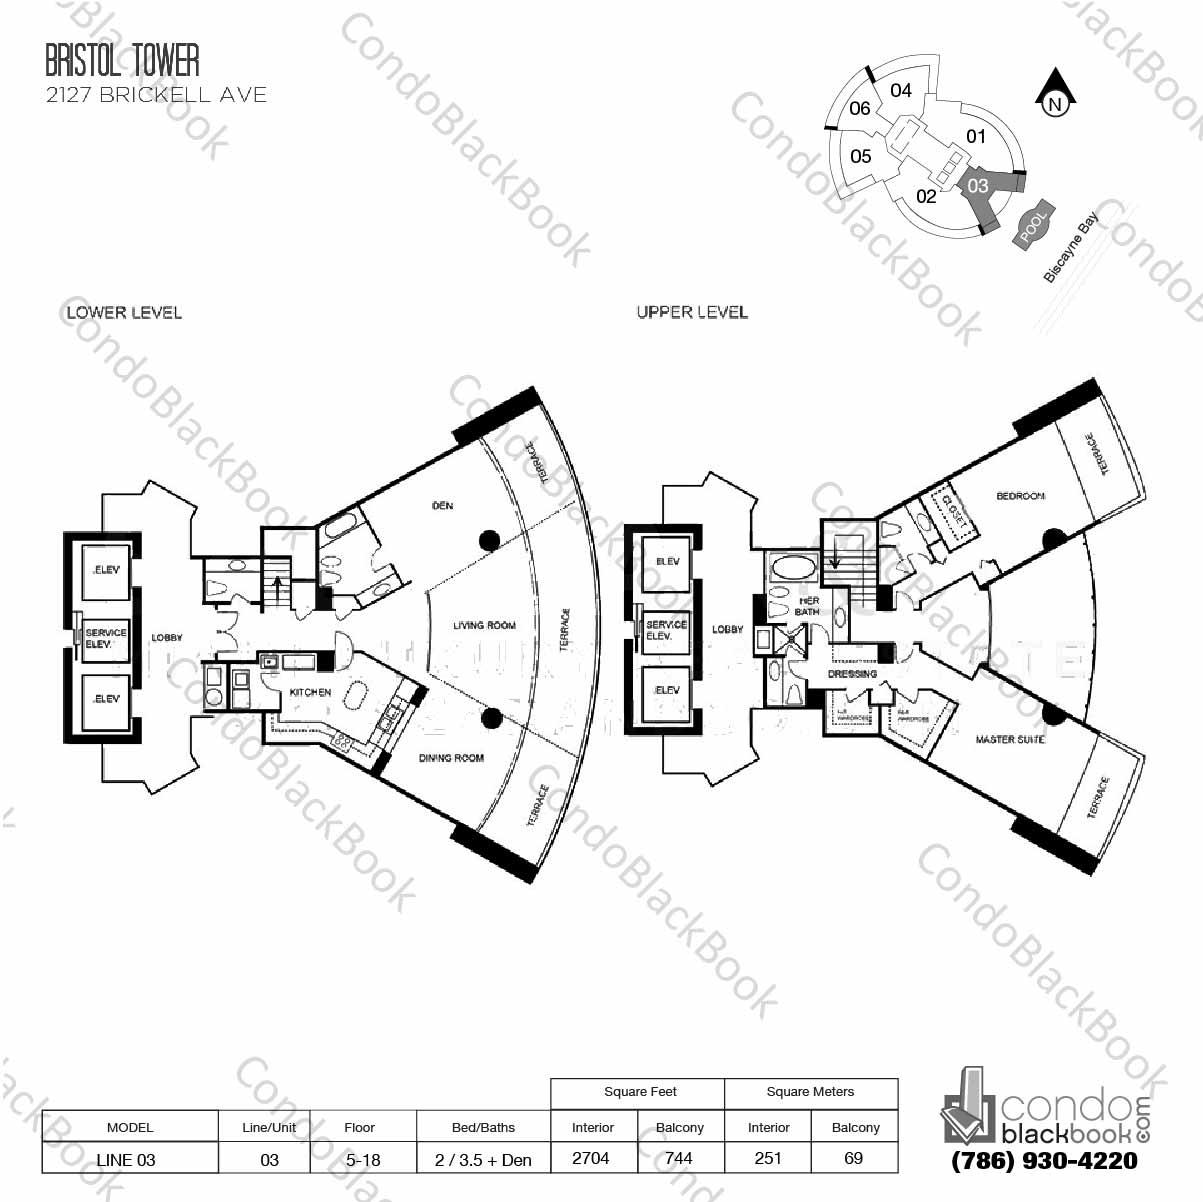 2004 bmw 325xi wiring diagram with E46 Wiring Diagram Download on E46 Serpentine Belt Diagram further 2003 Bmw 325xi Belt Diagram as well 03 Bmw 325ci Convertible Fuse Box Diagram together with Saturn Ls Battery Location likewise 1998 Bmw 740il Fuse Box Diagram.